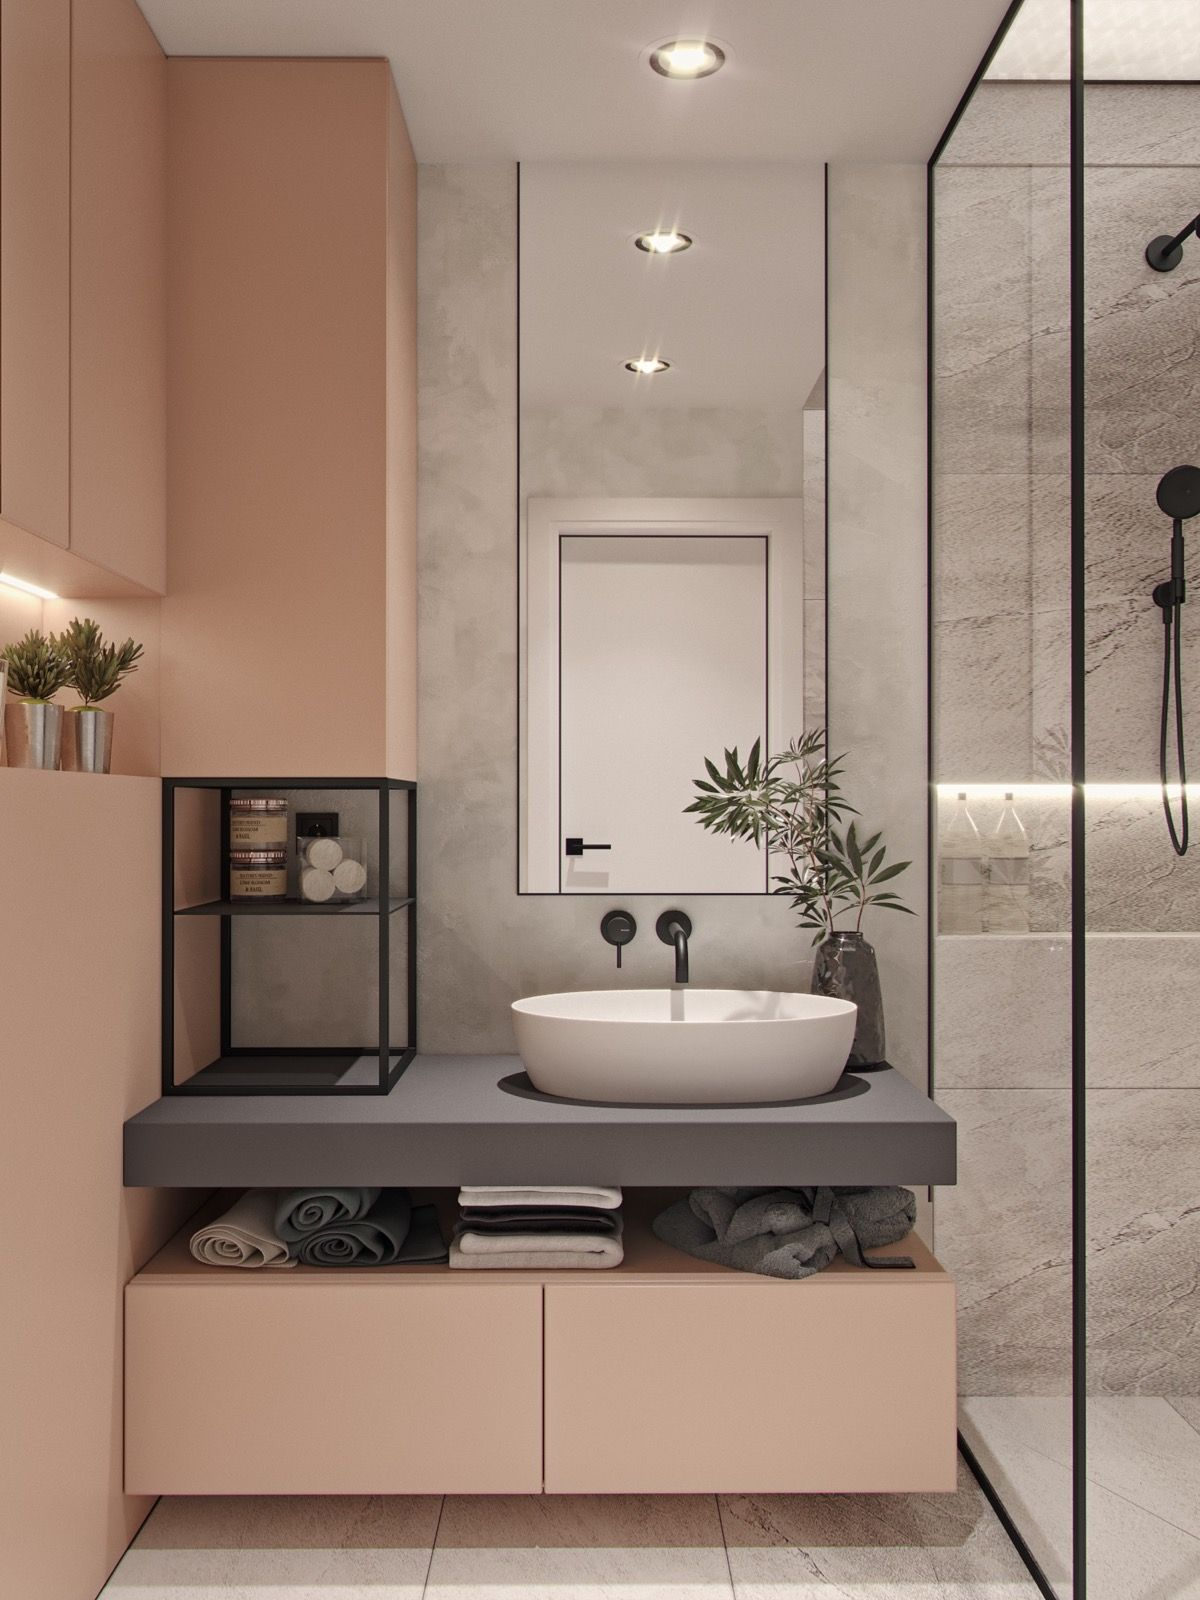 How to install  bathroom vanity  our bathrooms are sometimes neglected because we concentrate on the areas of house that people see when they first also cool black and white design ideas rh pinterest